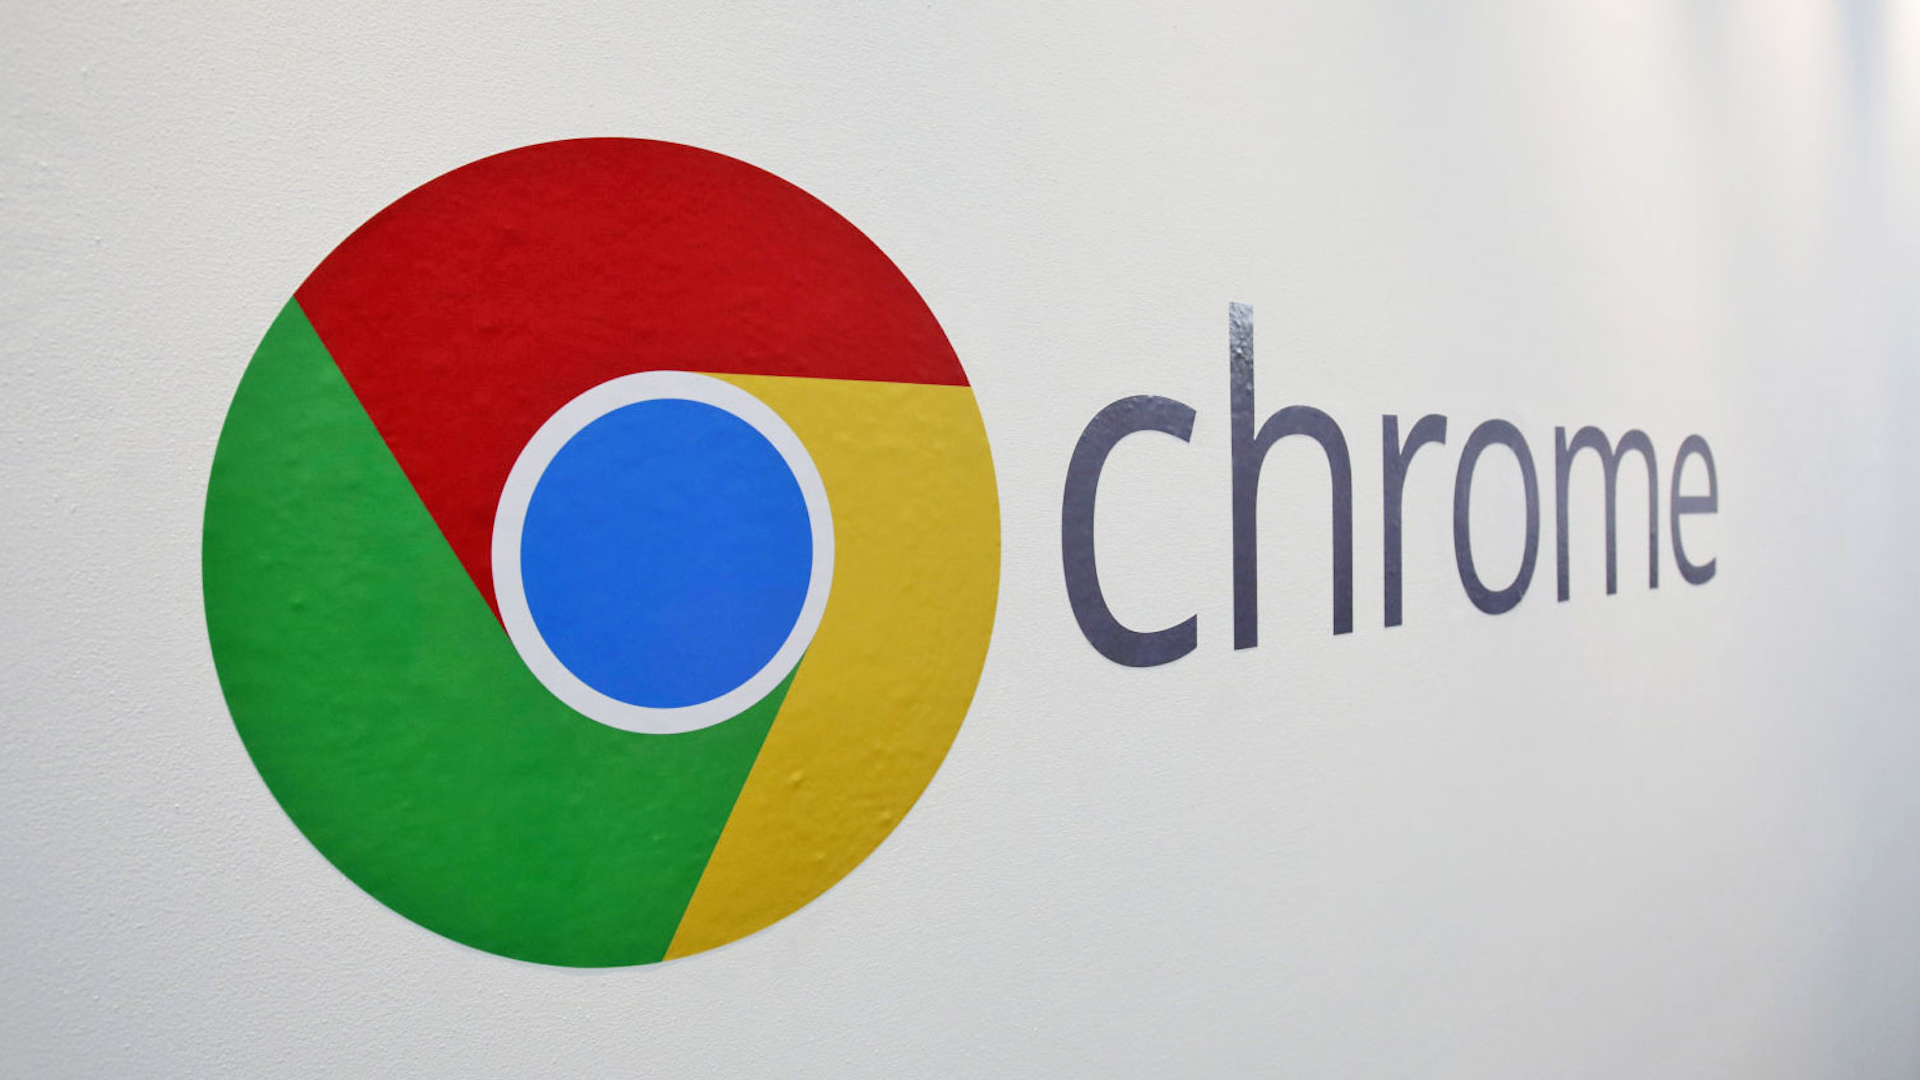 chrome logo flash disabled compatibility